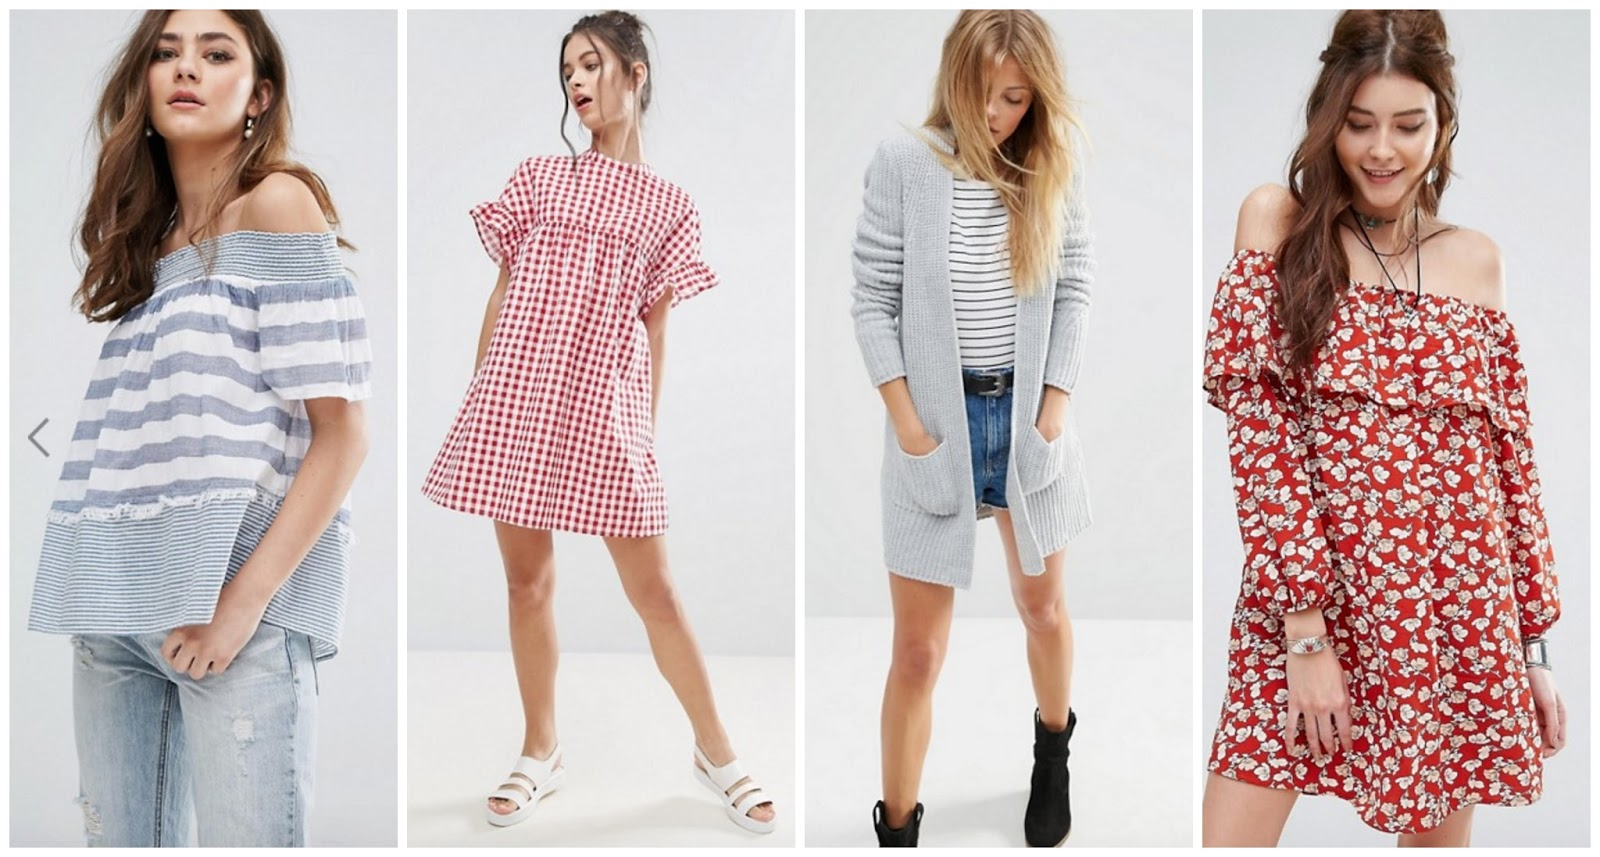 ASOS Spring Picks 2